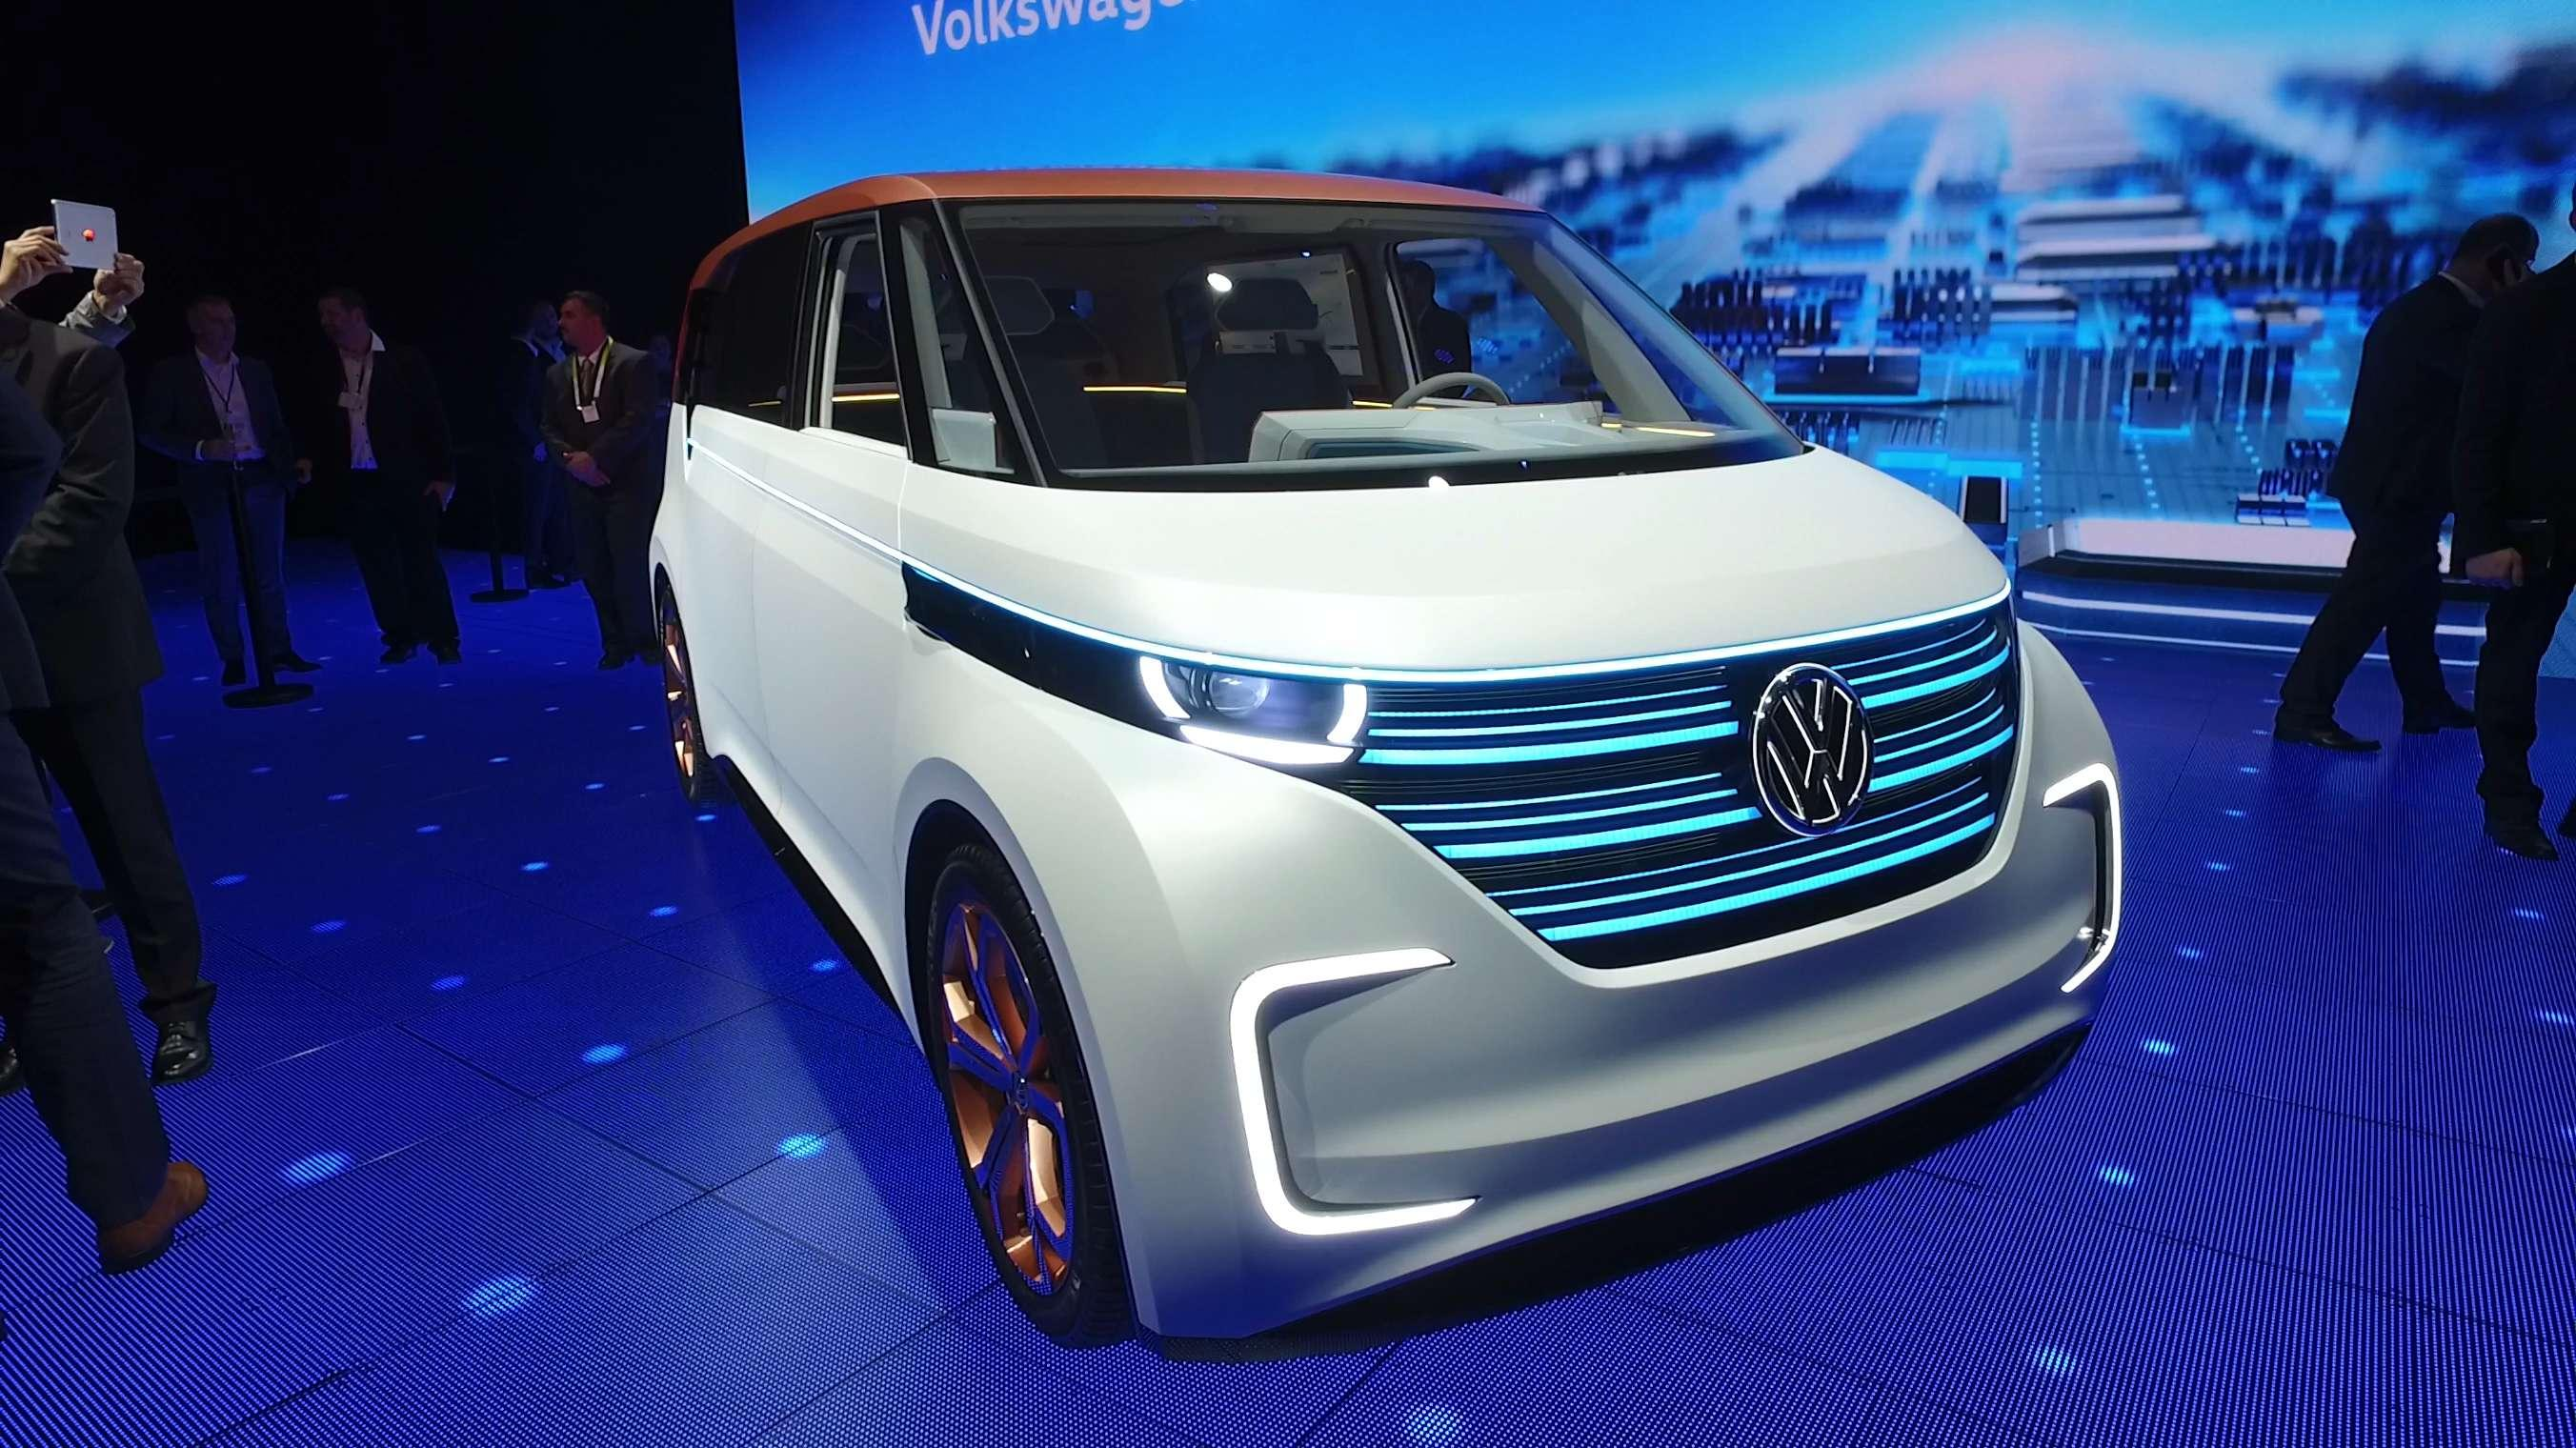 VW Unveils Electric Bus After Diesel Scandal